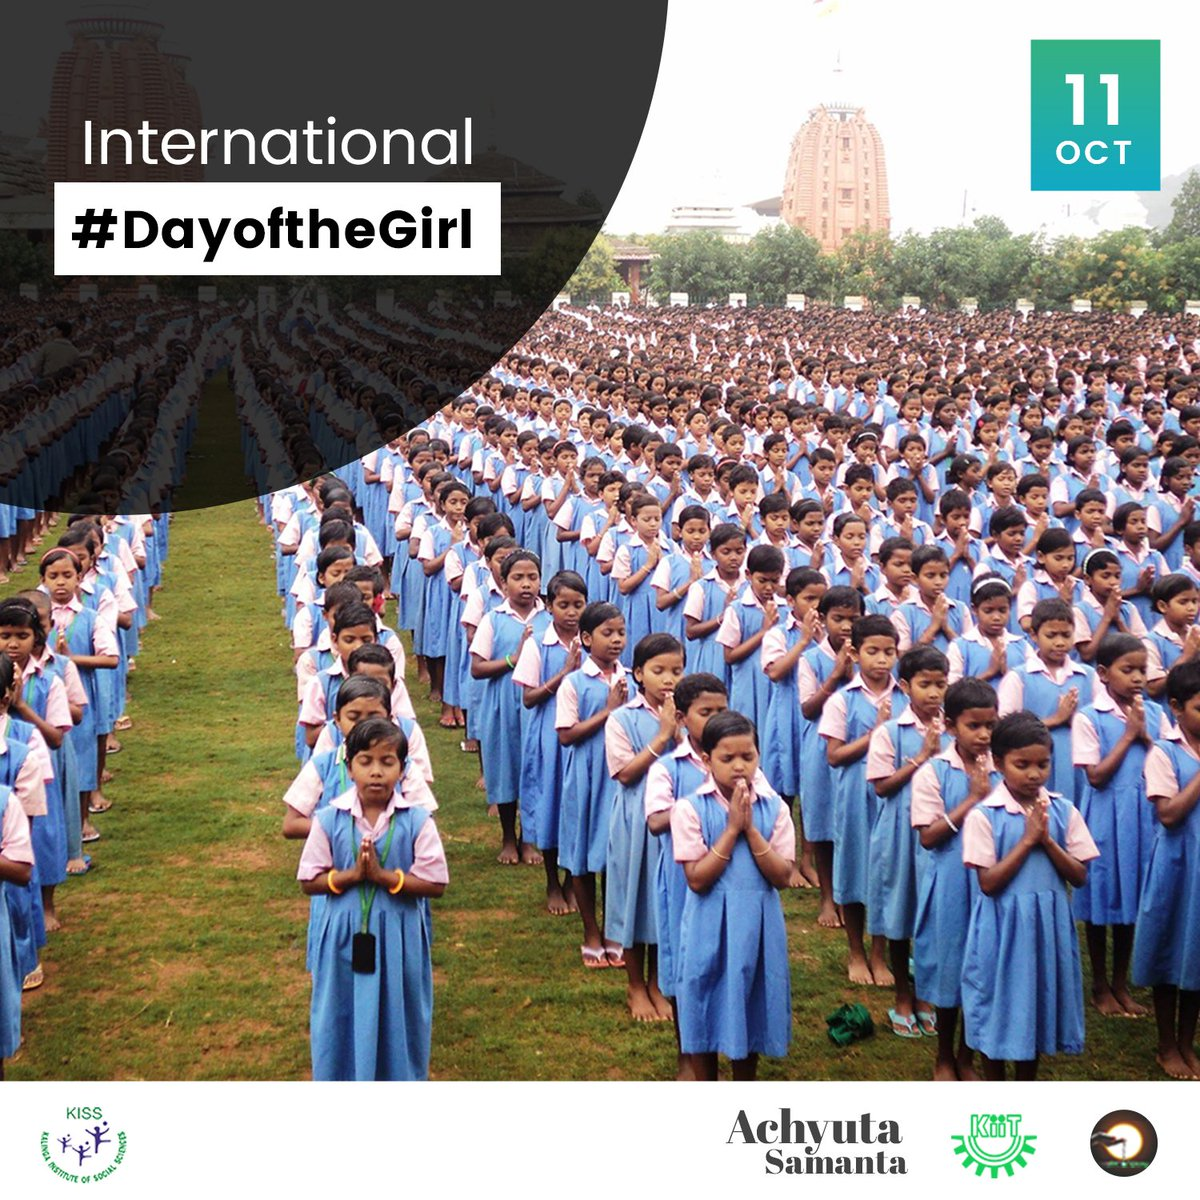 #KISS is proud to support #DayoftheGirl today. Girls Progress = Nations Progress. 1.1 billion girls. 1 🌍 Unlimited dreams. Girls, you can do anything!